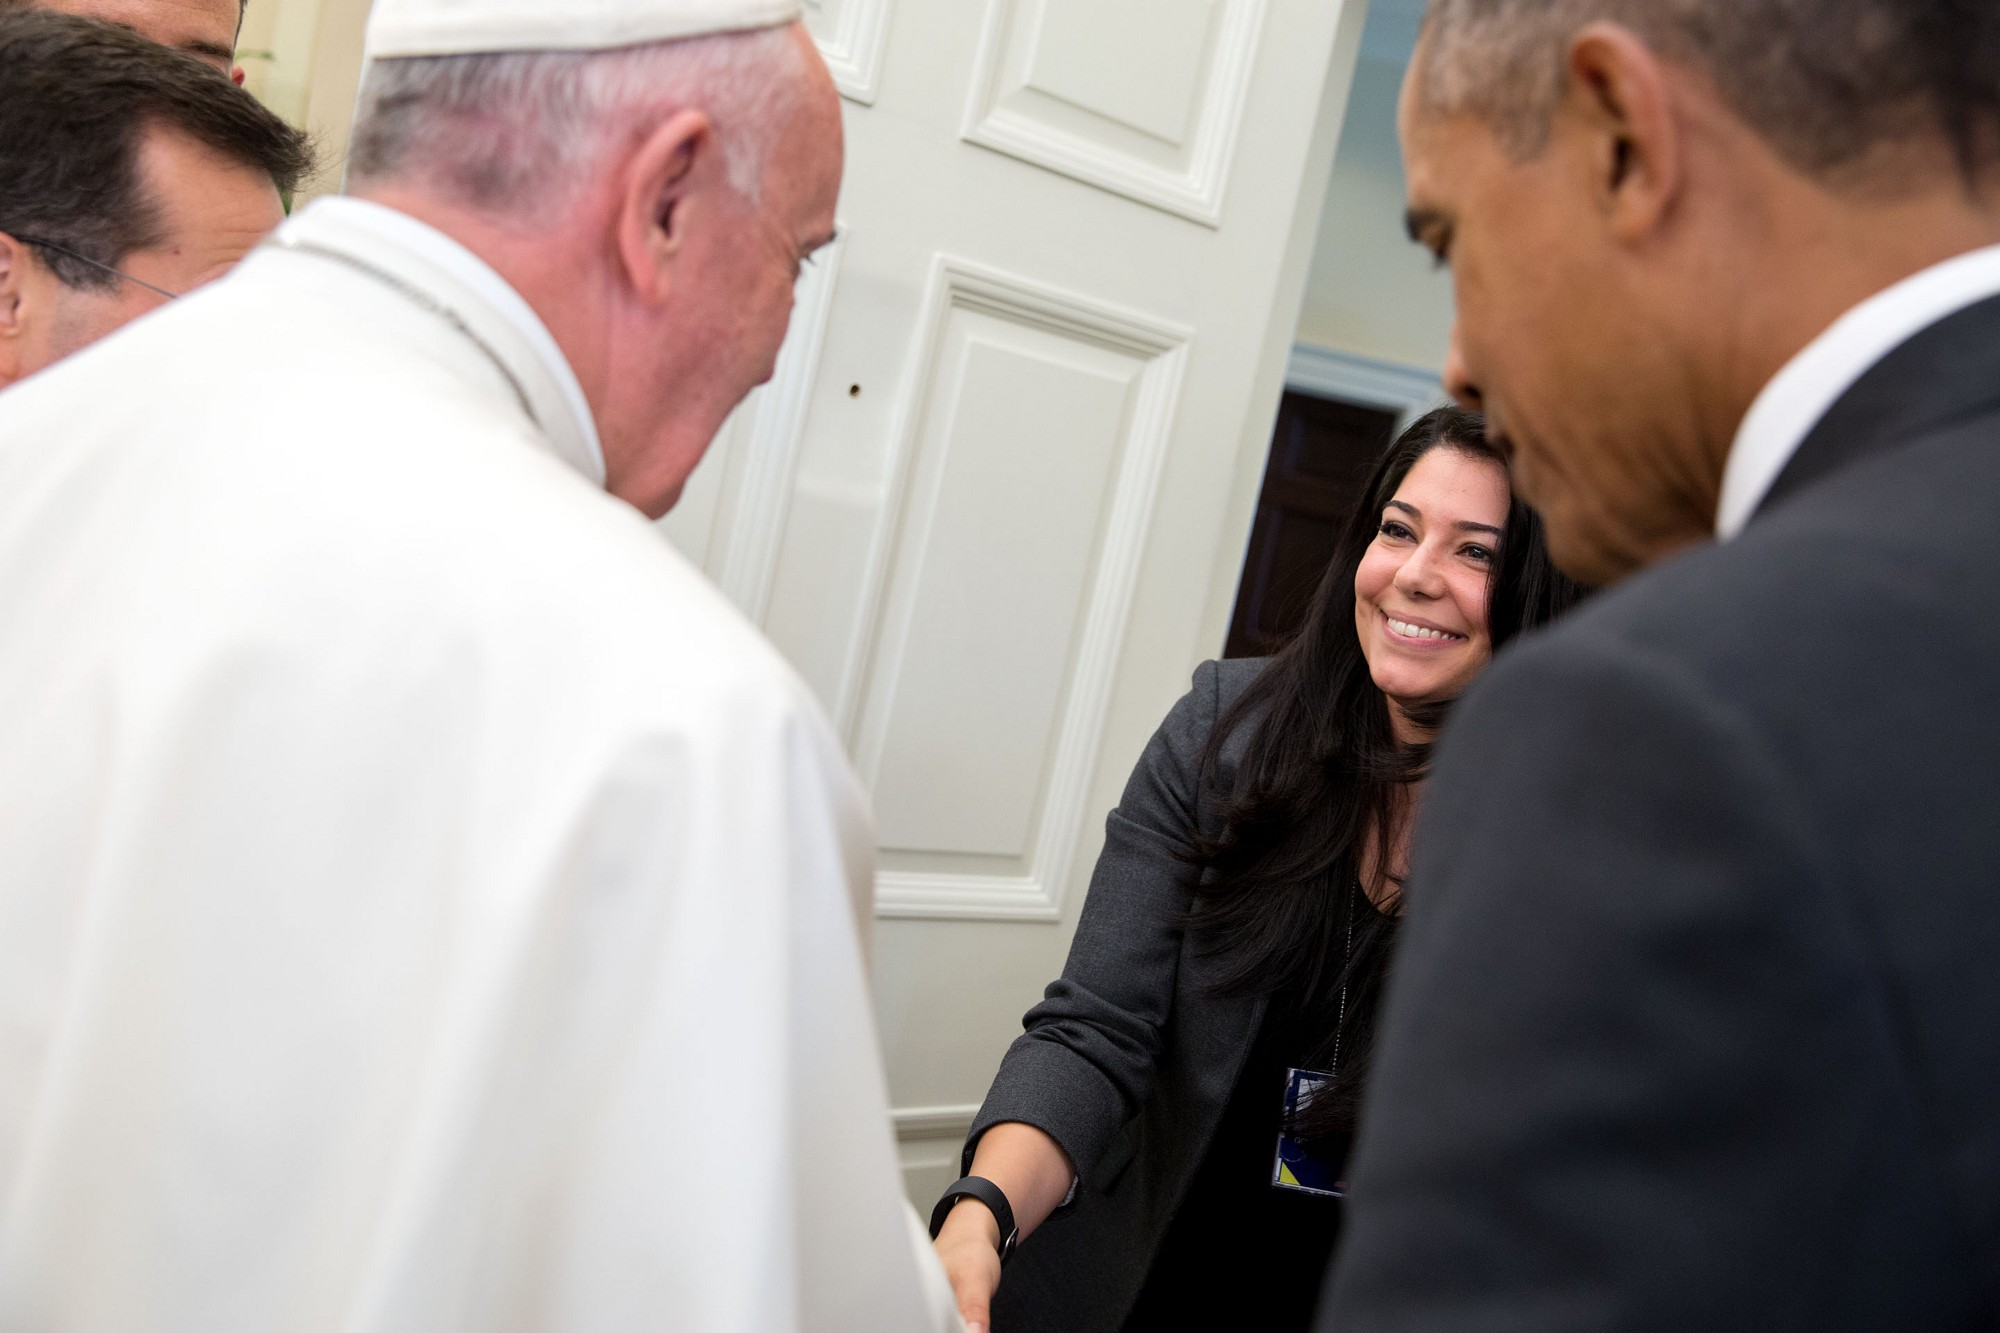 President Obama introduces Pope Francis to his Personal Aide Ferial Govashiri. (Official White House Photo by Pete Souza)